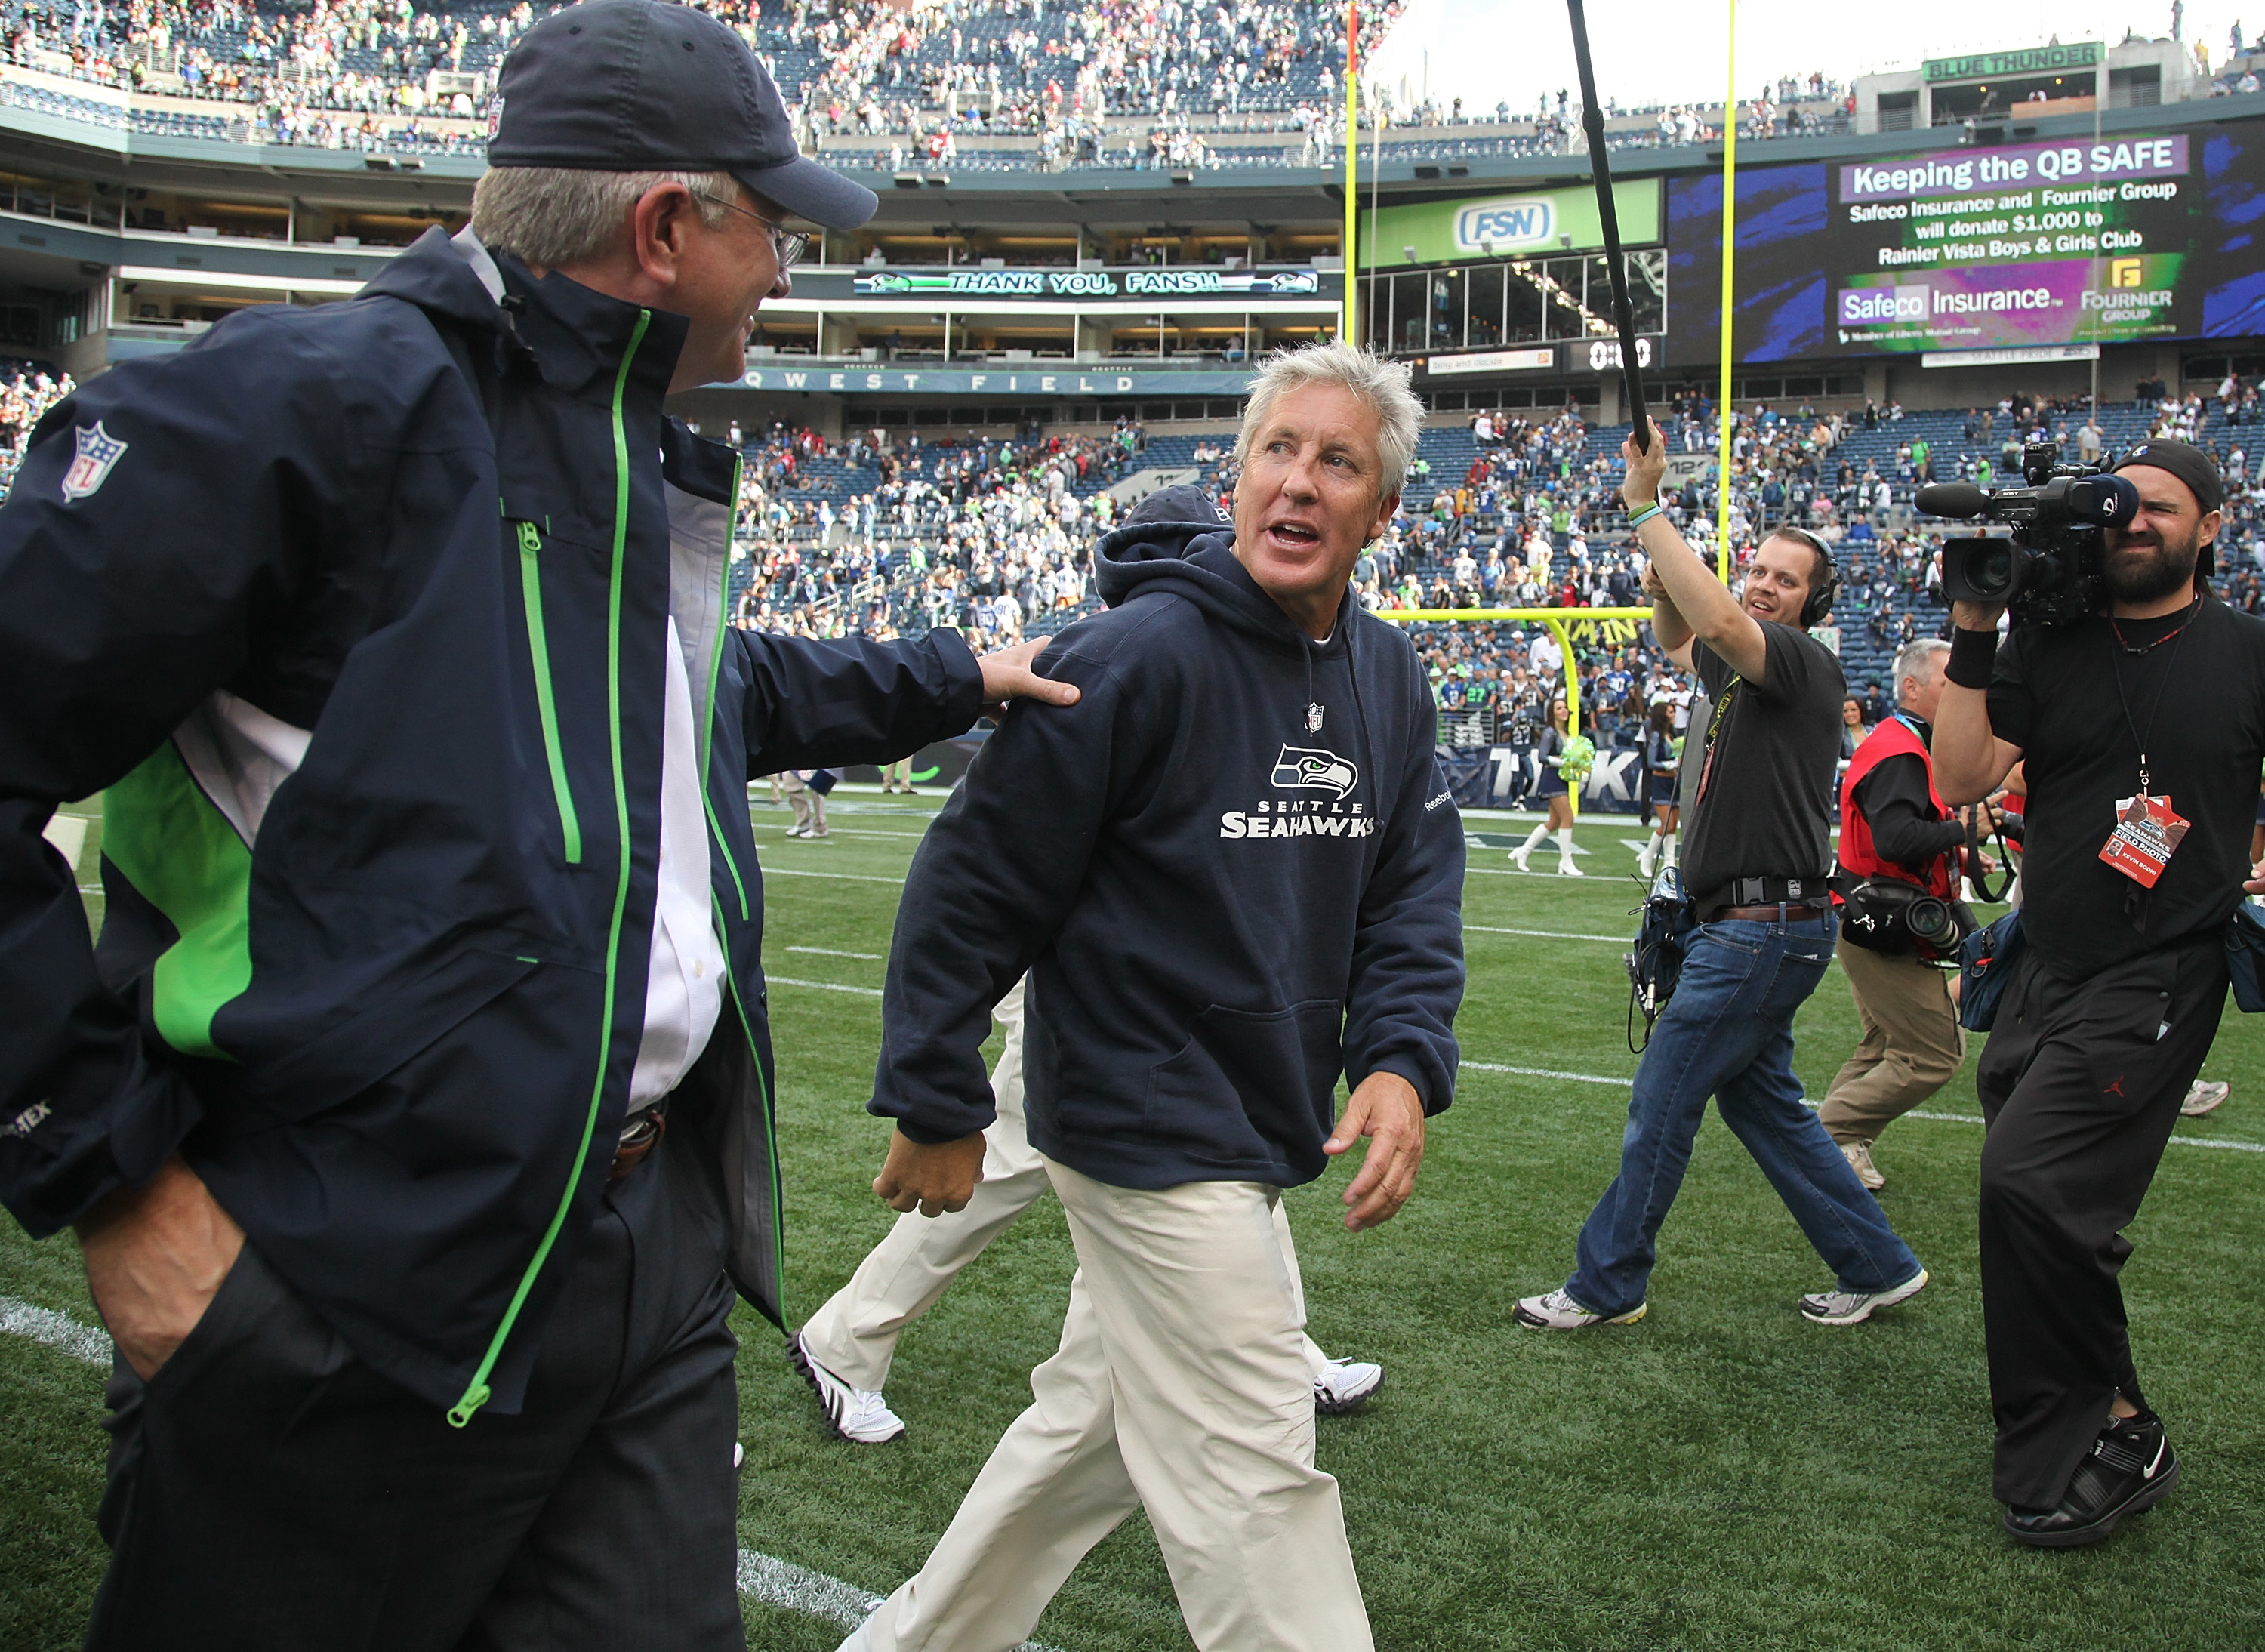 SEATTLE - SEPTEMBER 12:  Head coach Pete Carroll of the Seattle Seahawks (R) is congratulated by Seahawks' Chief Executive Officer  Tod Leiweke after the NFL season opener against the San Francisco 49ers at Qwest Field on September 12, 2010 in Seattle, Wa